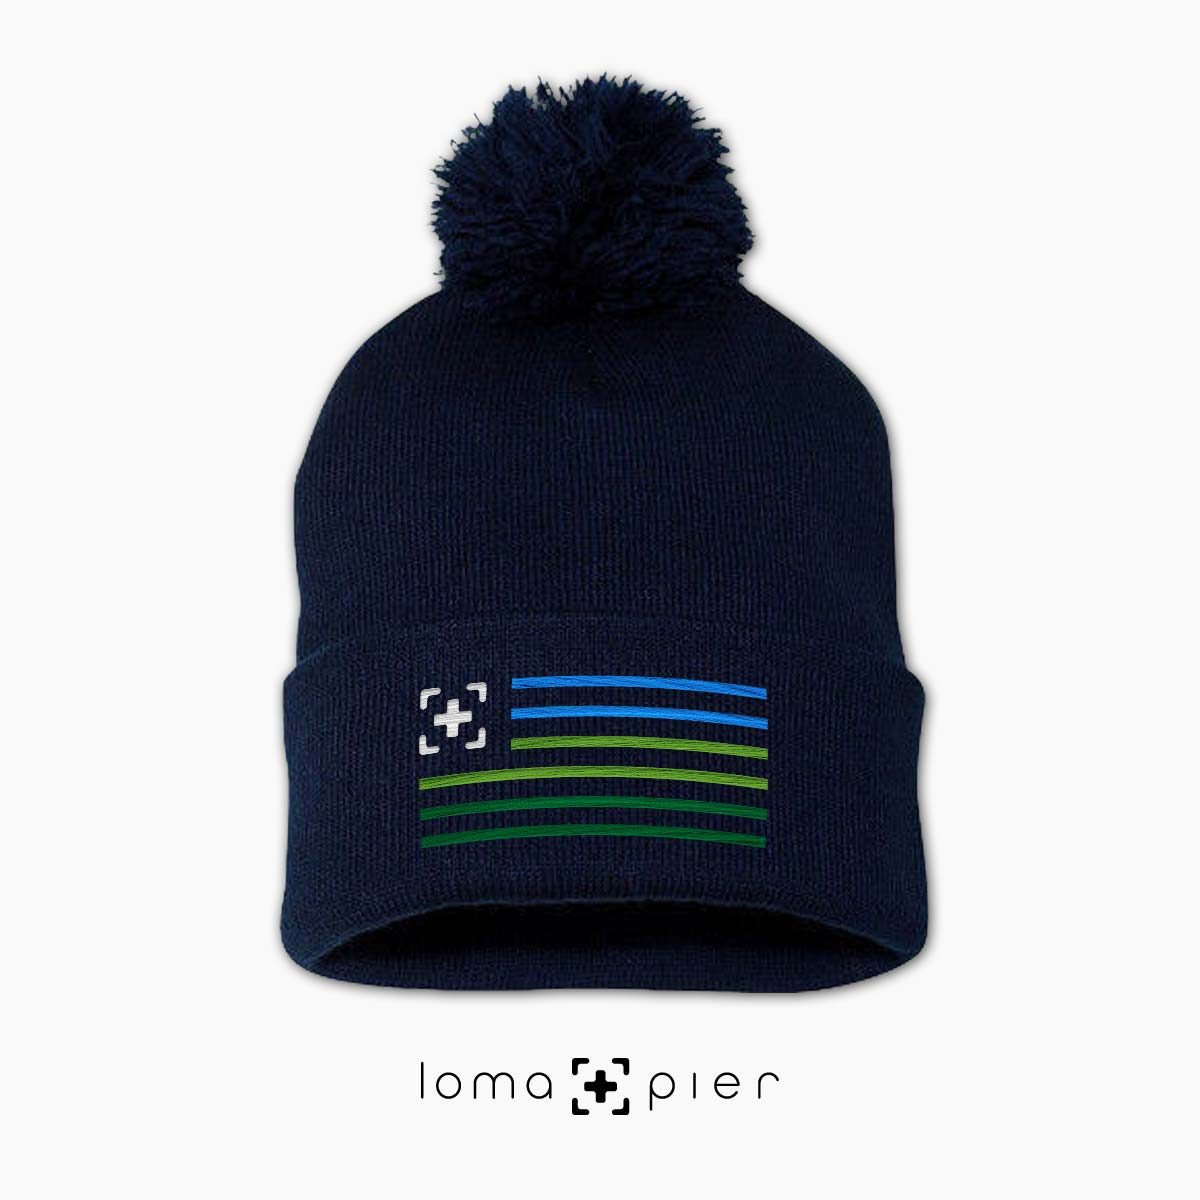 loma+stripes icon embroidered on a navy pom pom beanie by loma+pier beanie store